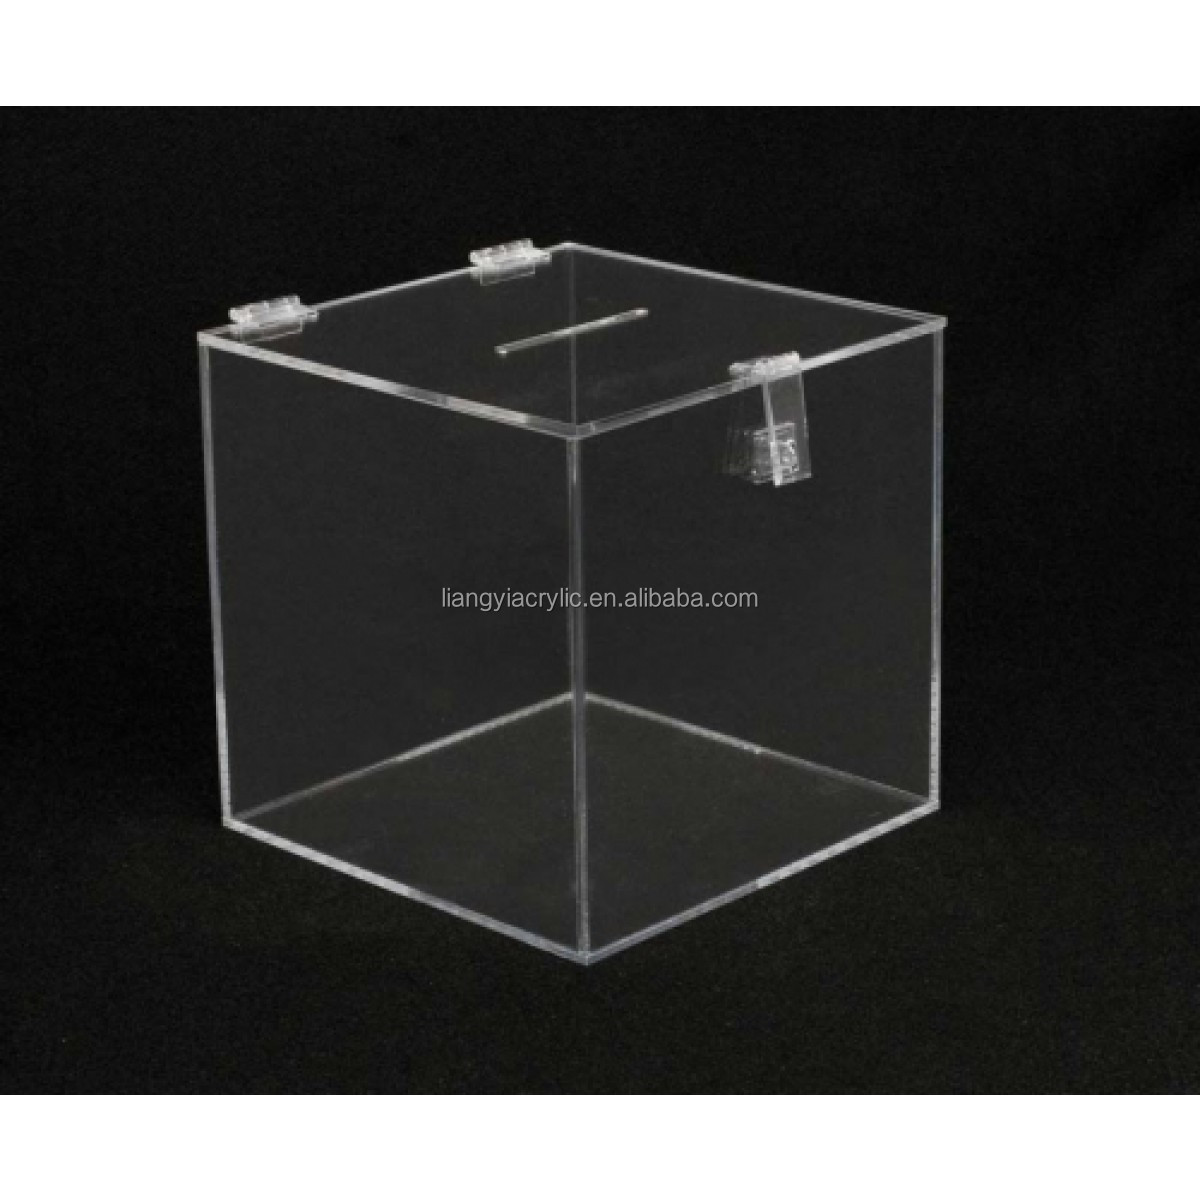 Acrylic Box Letters : Popular wall mounted clear acrylic mailbox postbox letter